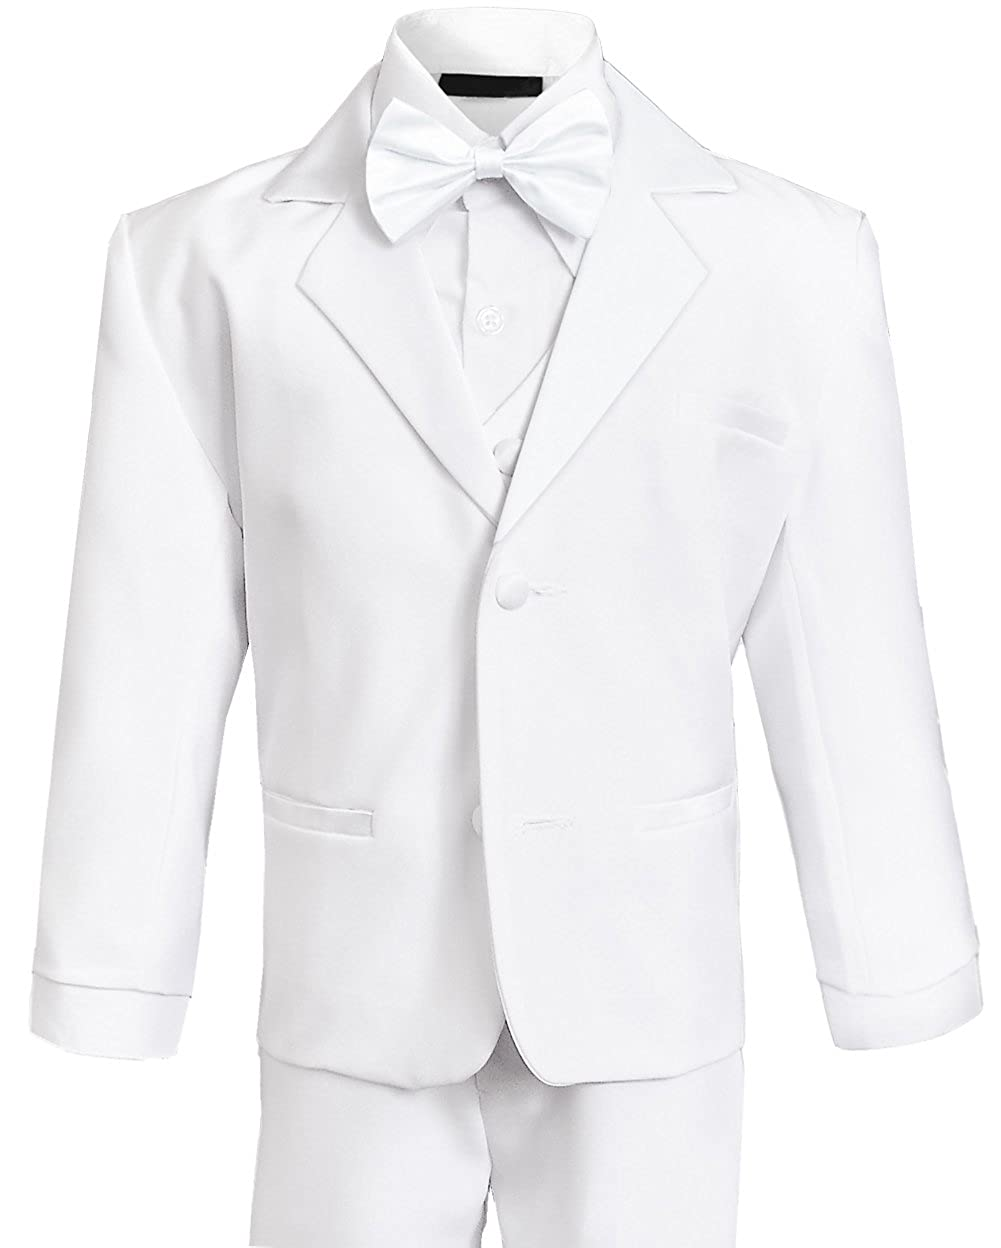 Black n Bianco Baby Boys and Infants Tuxedo with No Tail